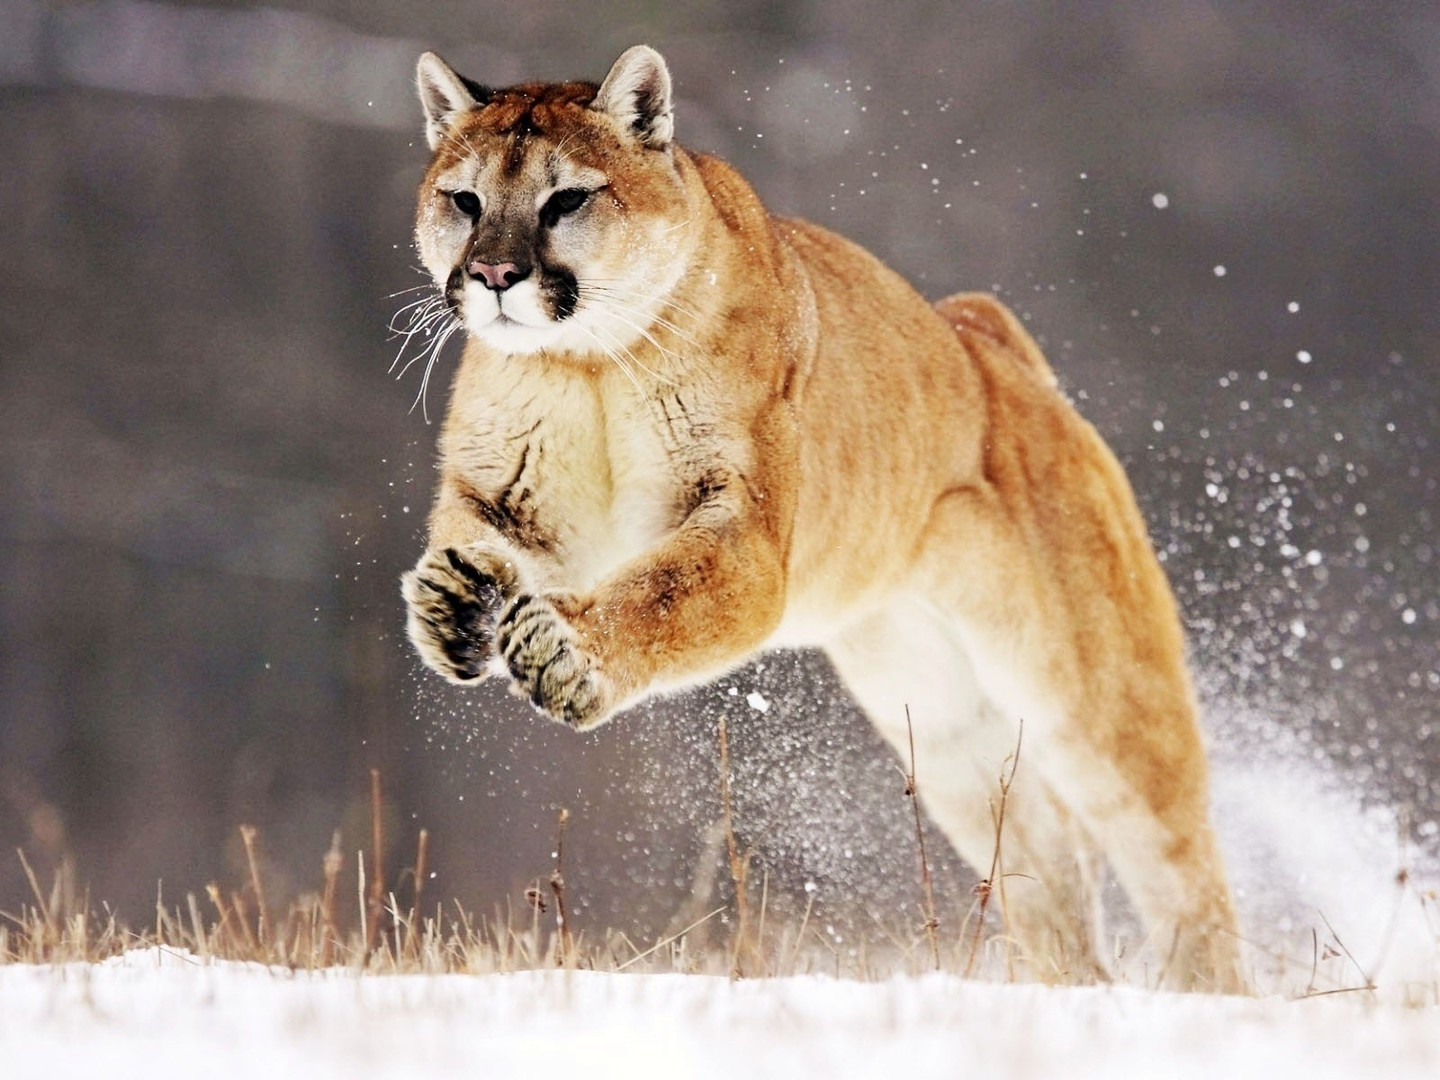 Animals Cougars Mountain Lions Wallpaper Allwallpaper In 12150